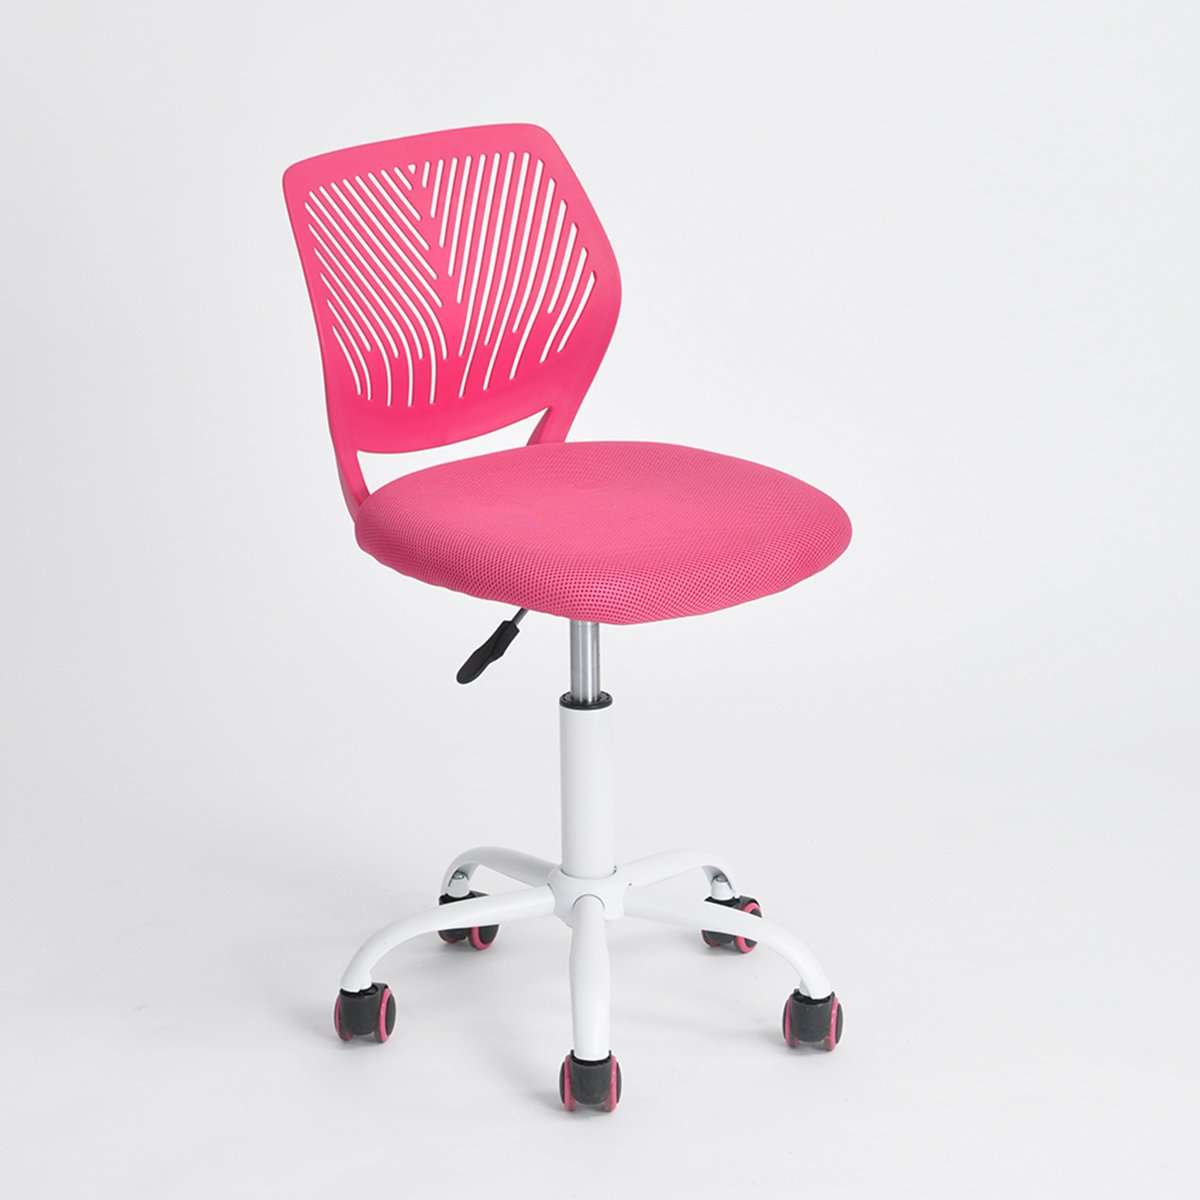 Pink Office Task Adjustable Desk Chair Mid Back Home Children Study Chair by eHomeProducts